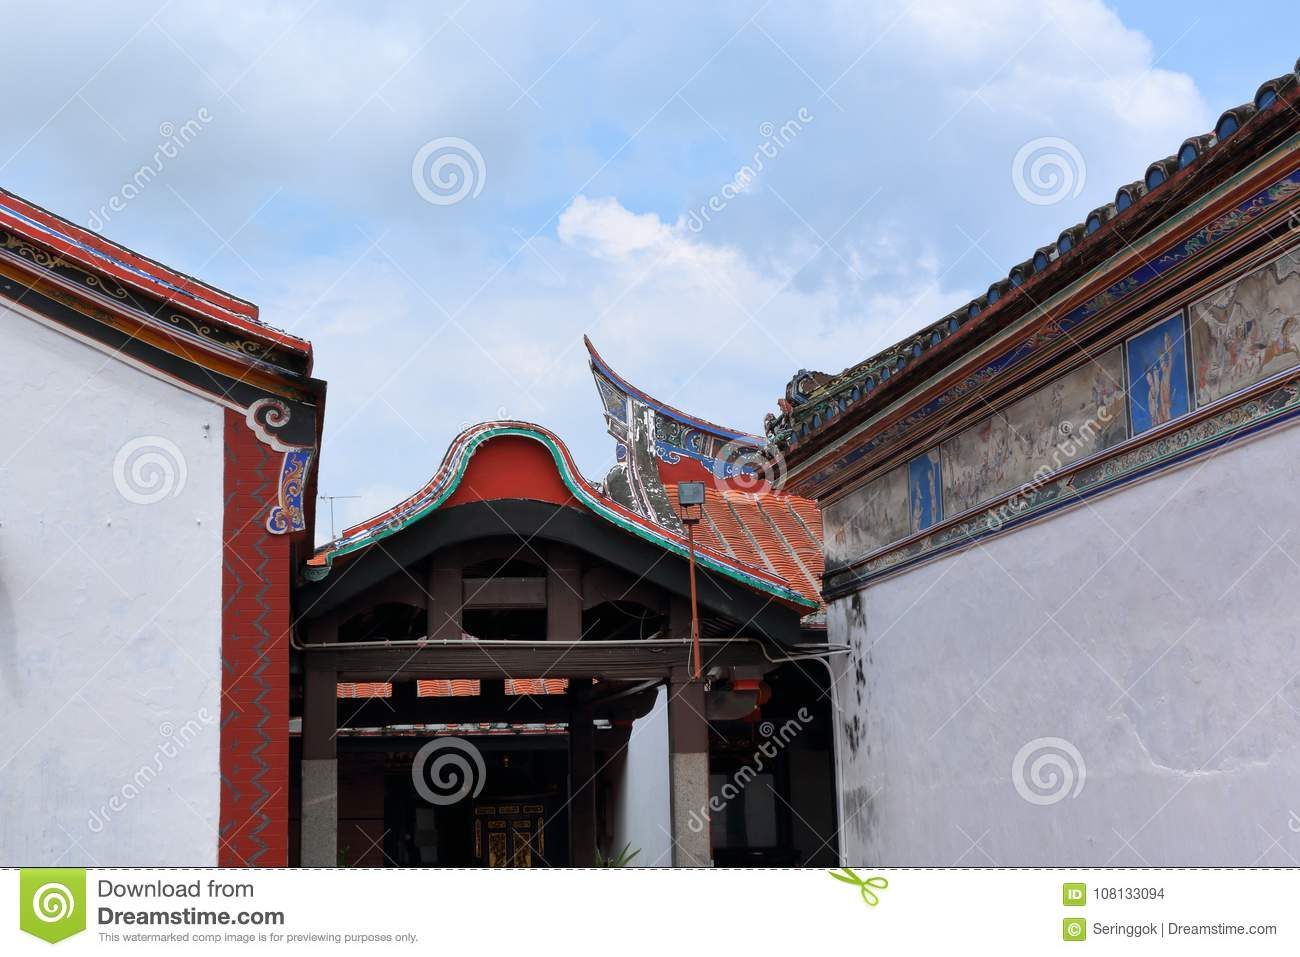 Chinese temple roof design